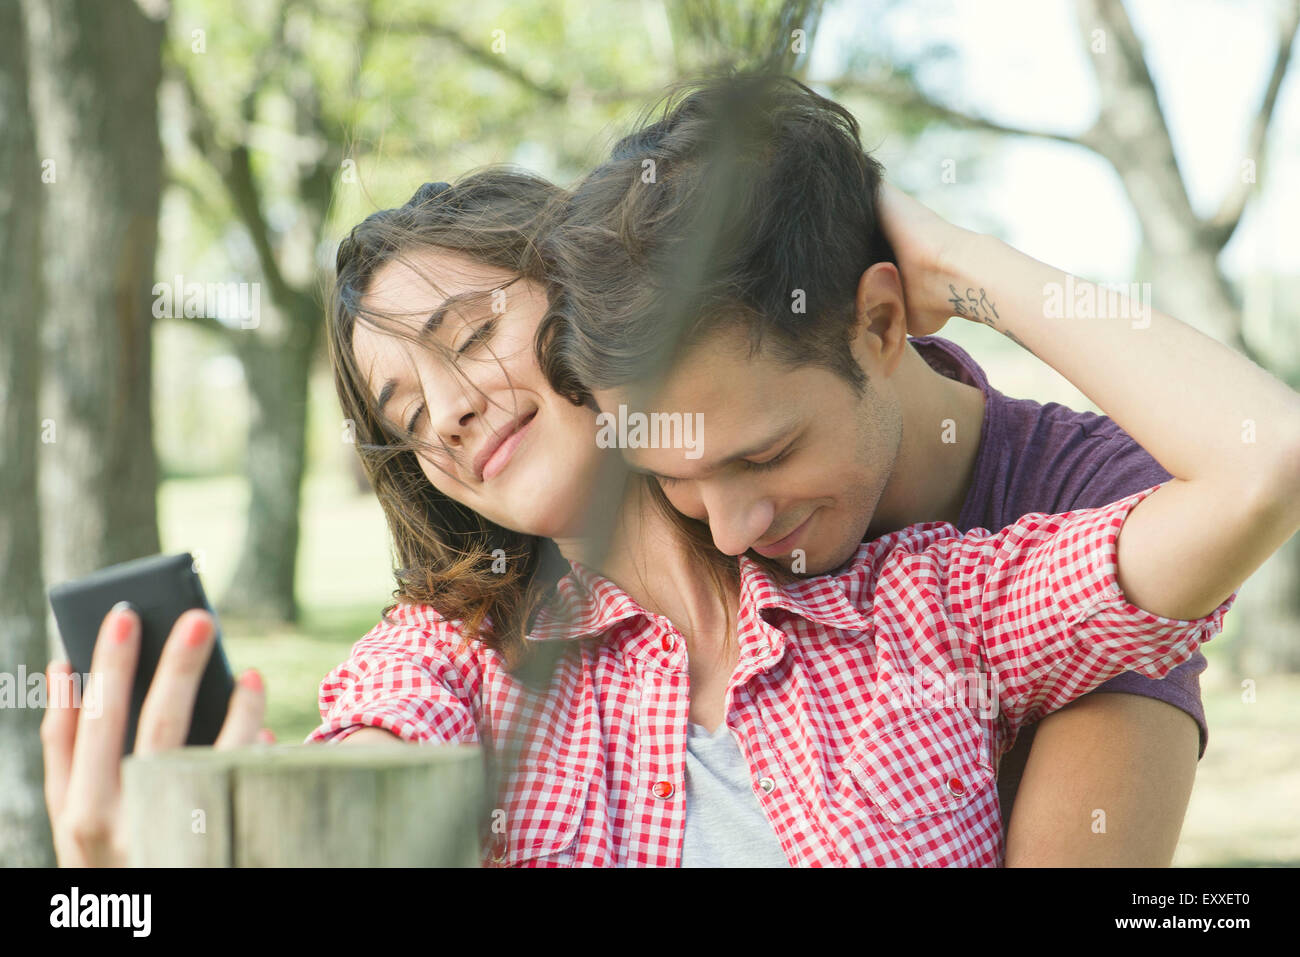 Couple embracing outdoors, posing for a selfie - Stock Image